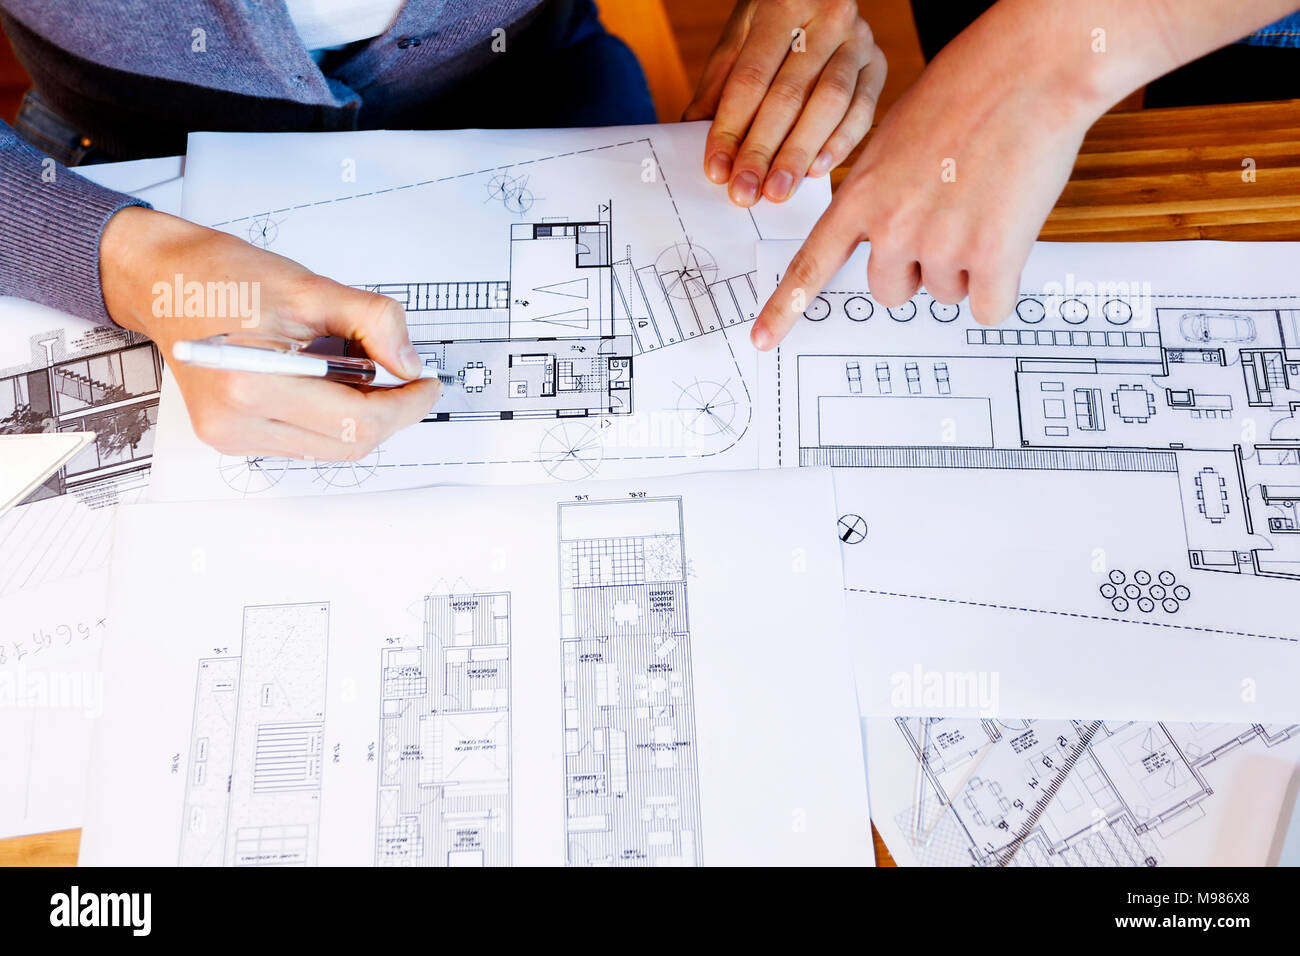 Team of architects working on a project, discussing blueprints - Stock Image